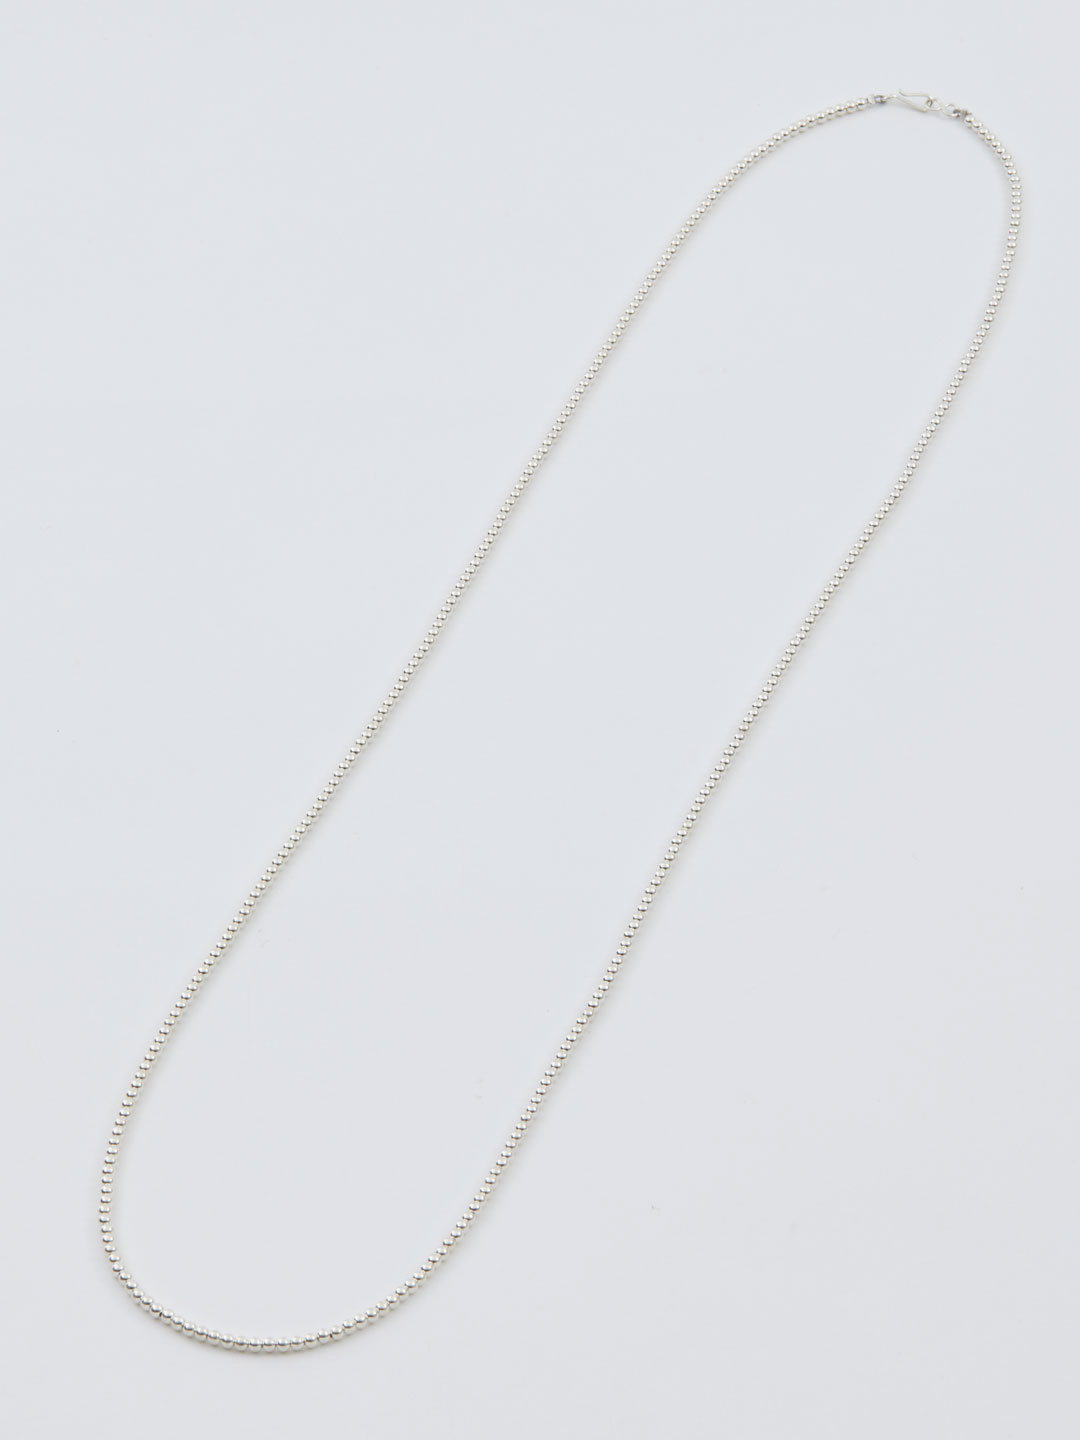 3mm Ball Chain Necklace 92cm  - Silver